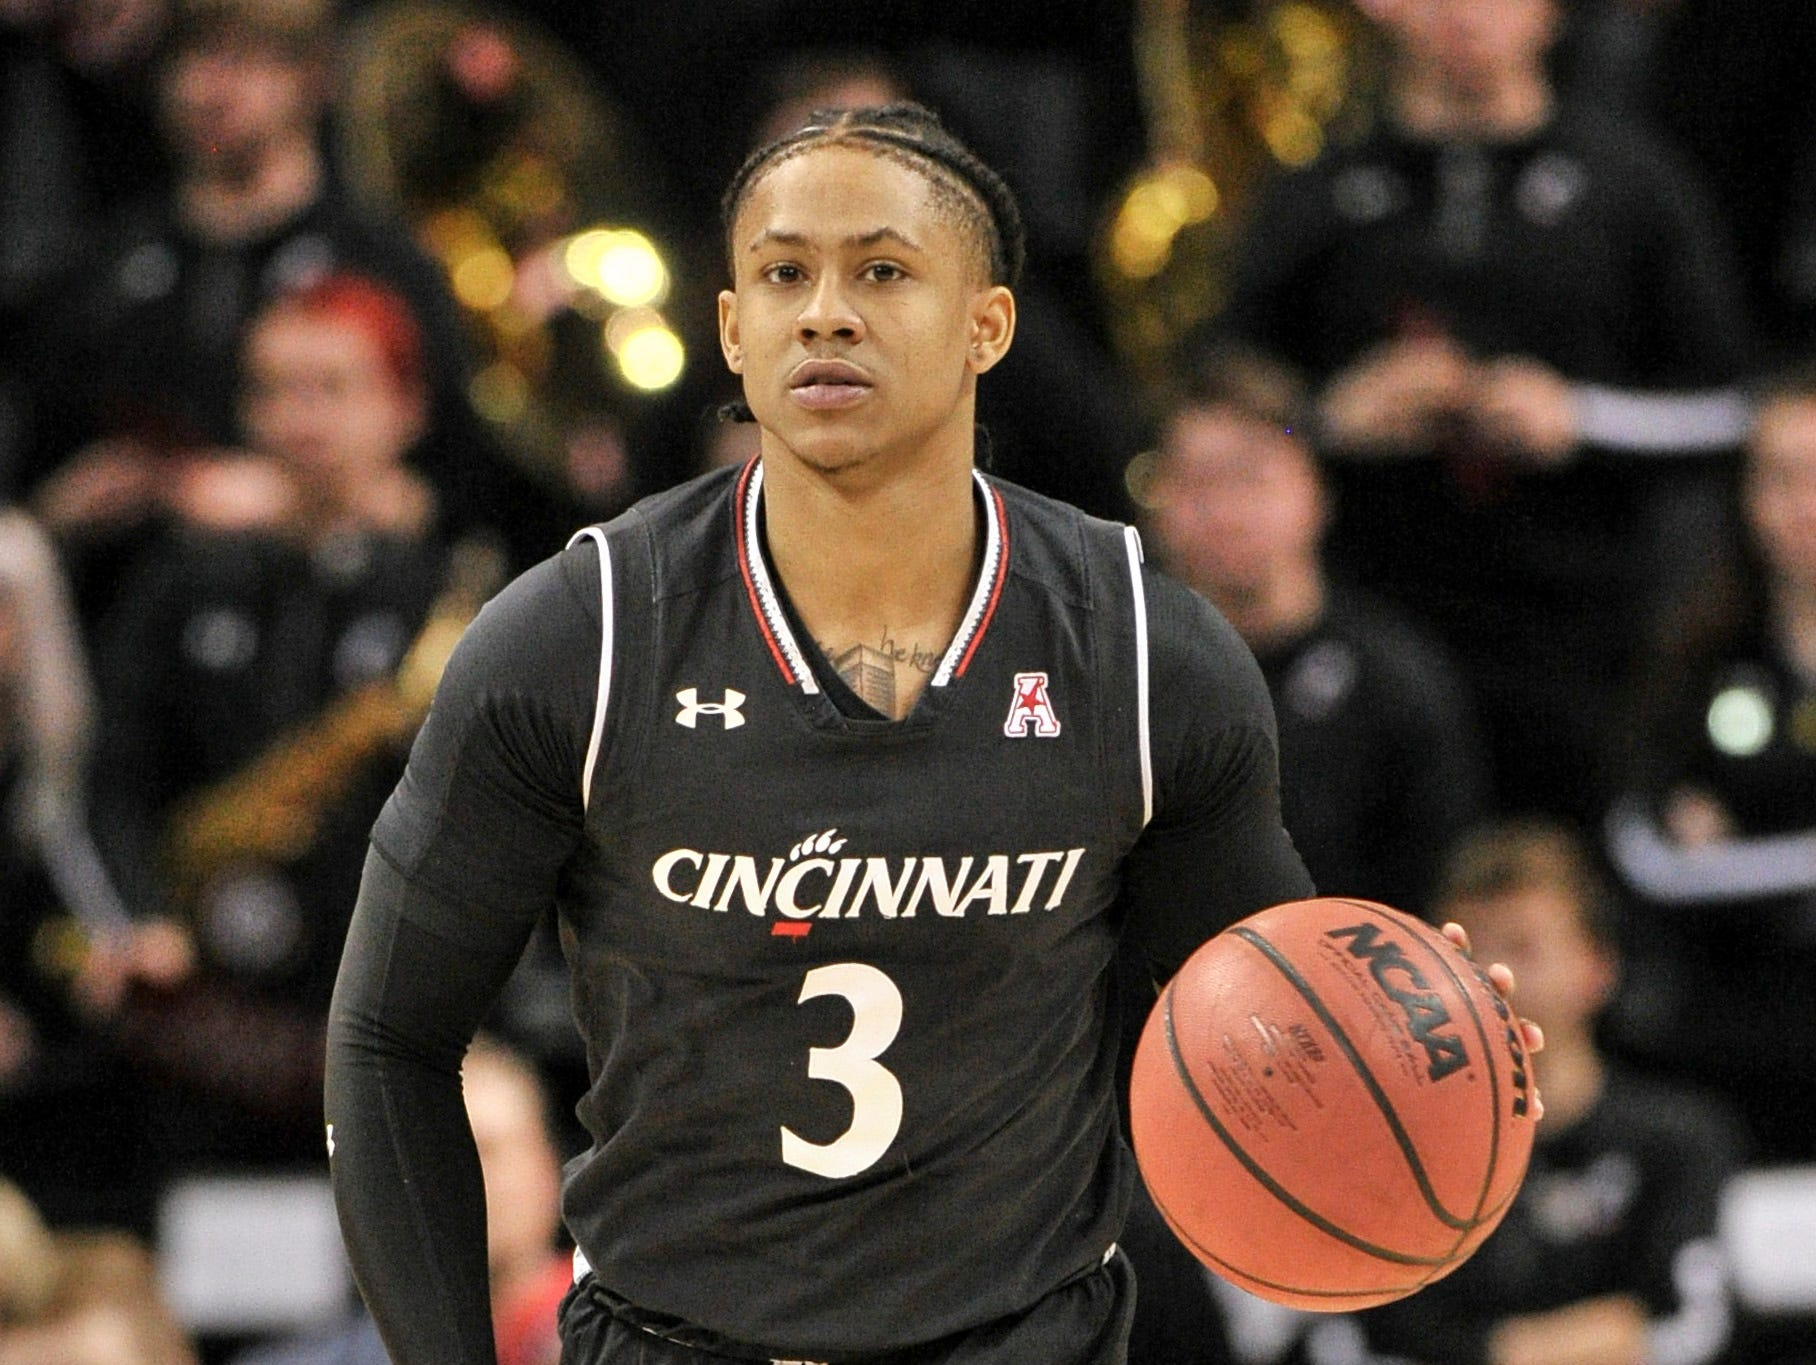 Cincinnati Bearcats guard Justin Jenifer (3) brings the ball up court during the first half against the Houston Cougars in the American Athletic Conference Tournament at FedExForum.